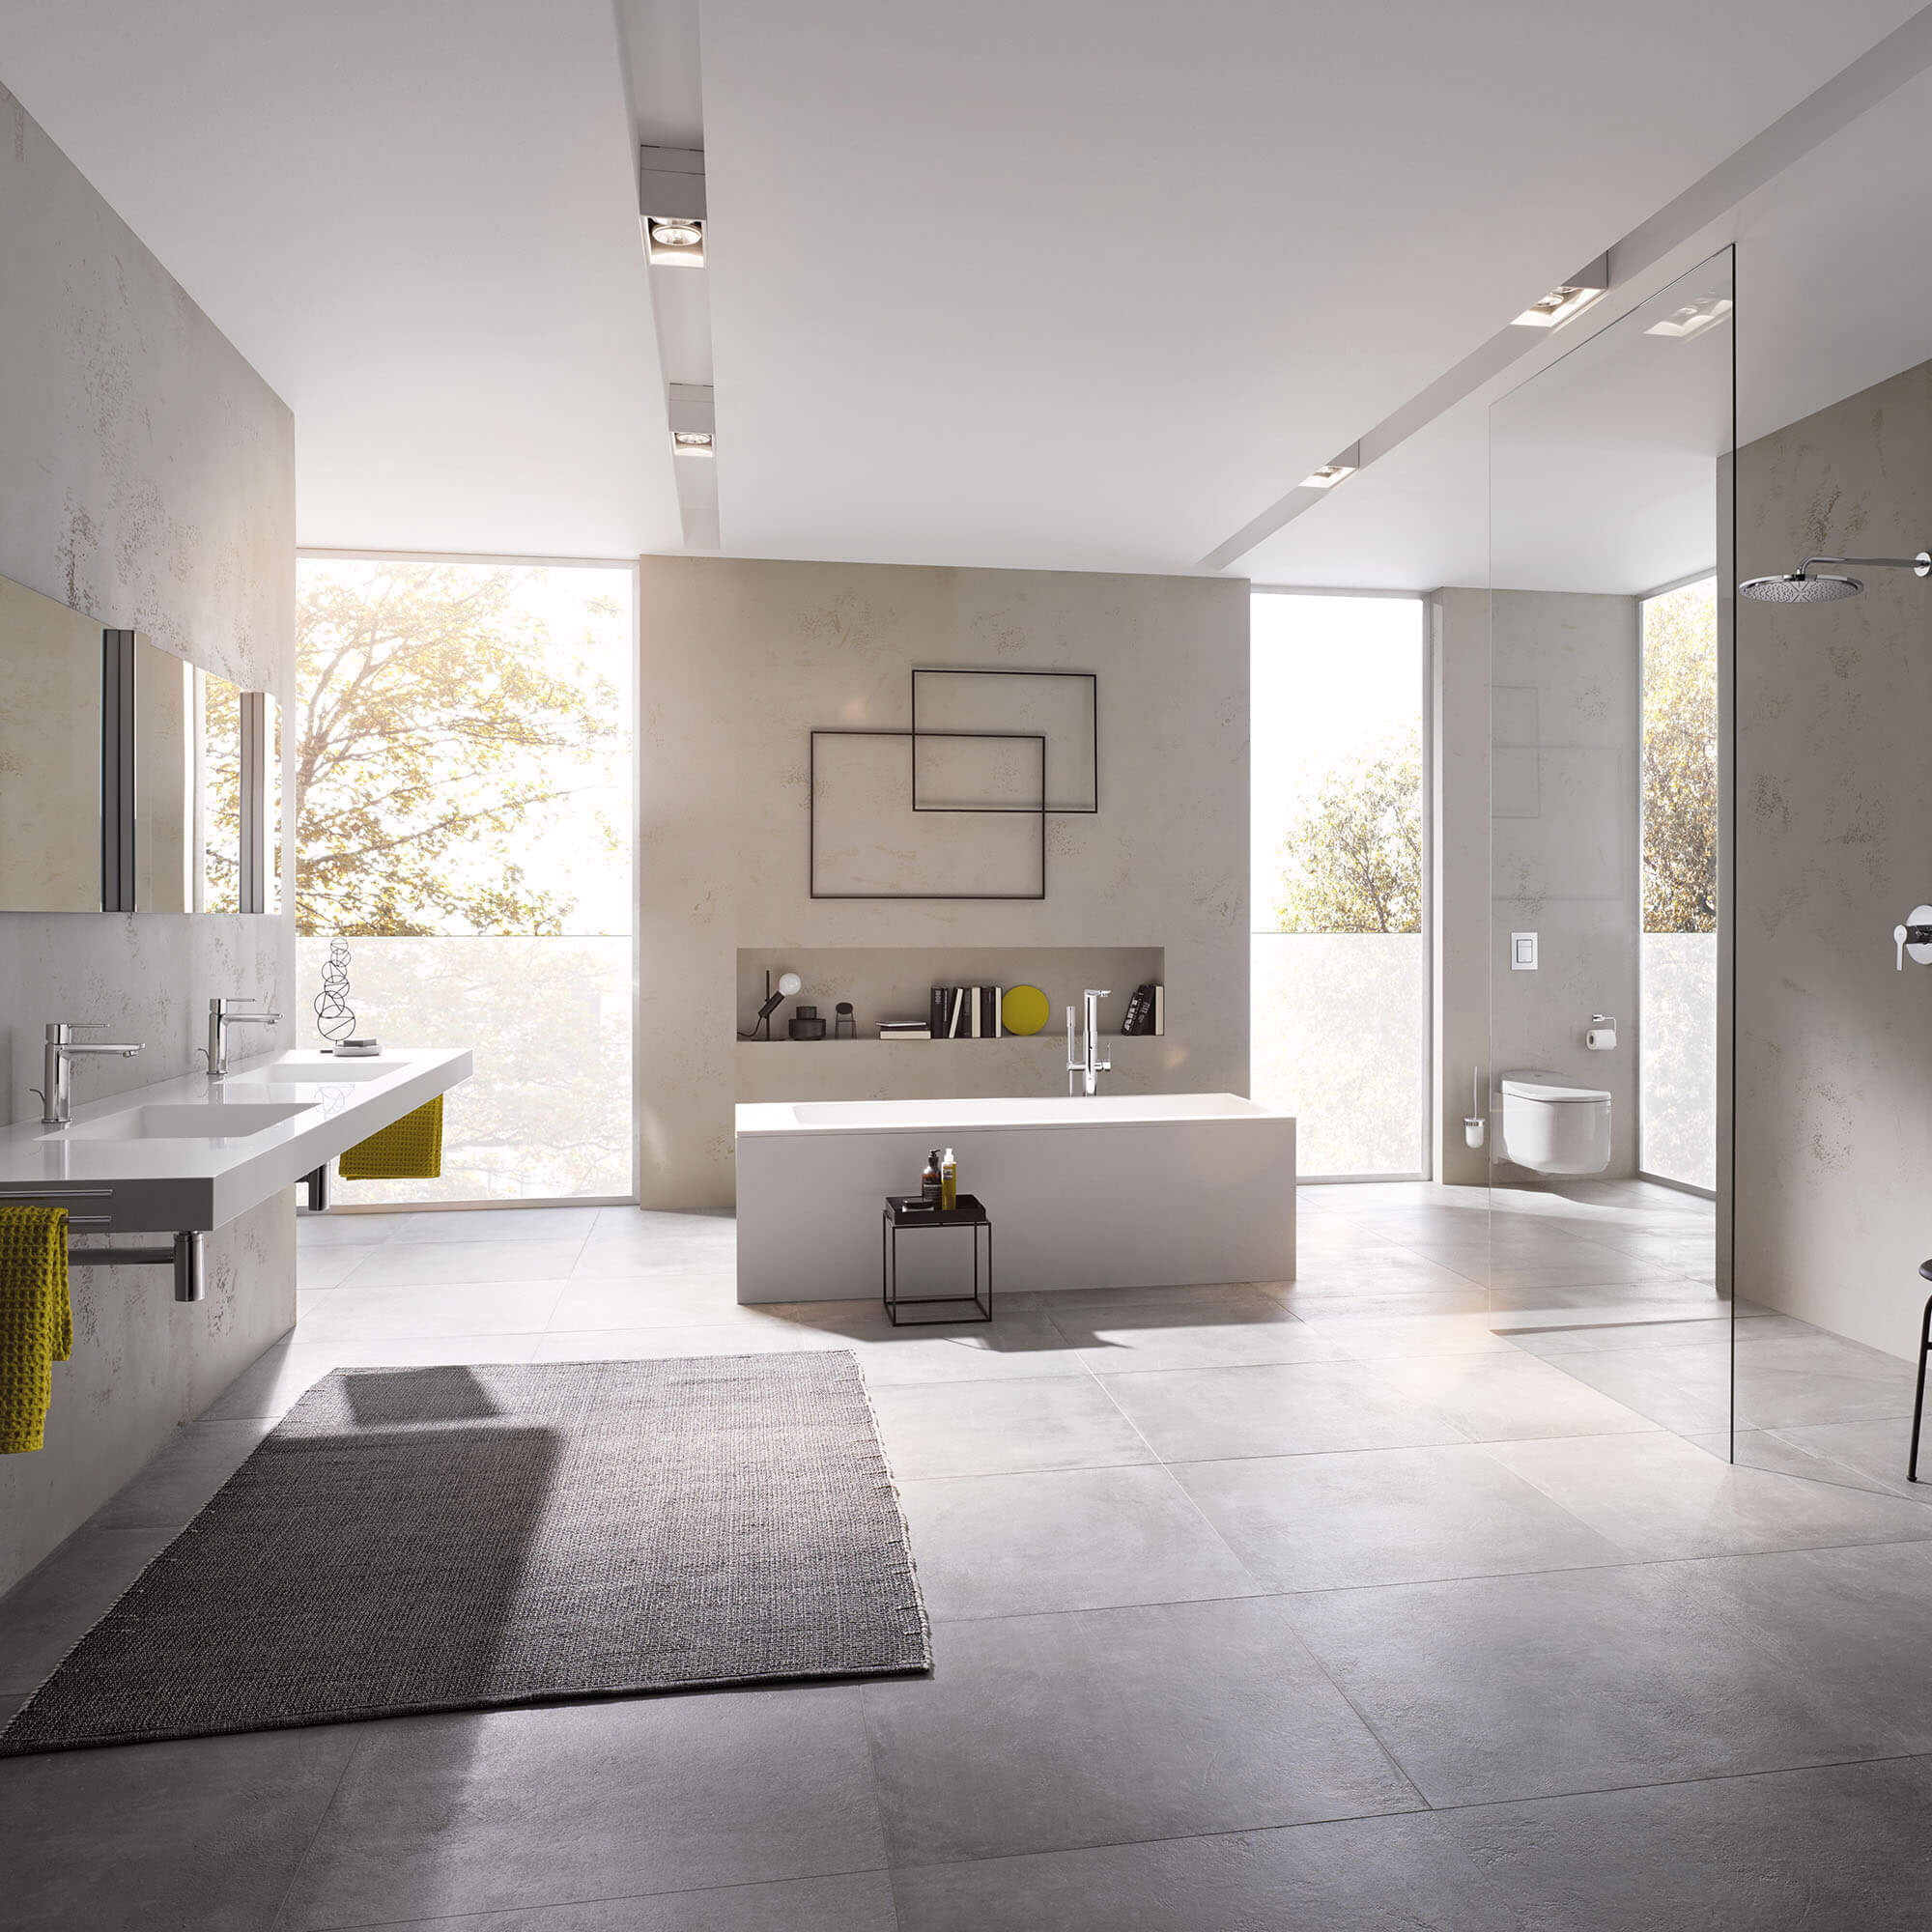 Complete bathroom display with floor to ceiling length windows.